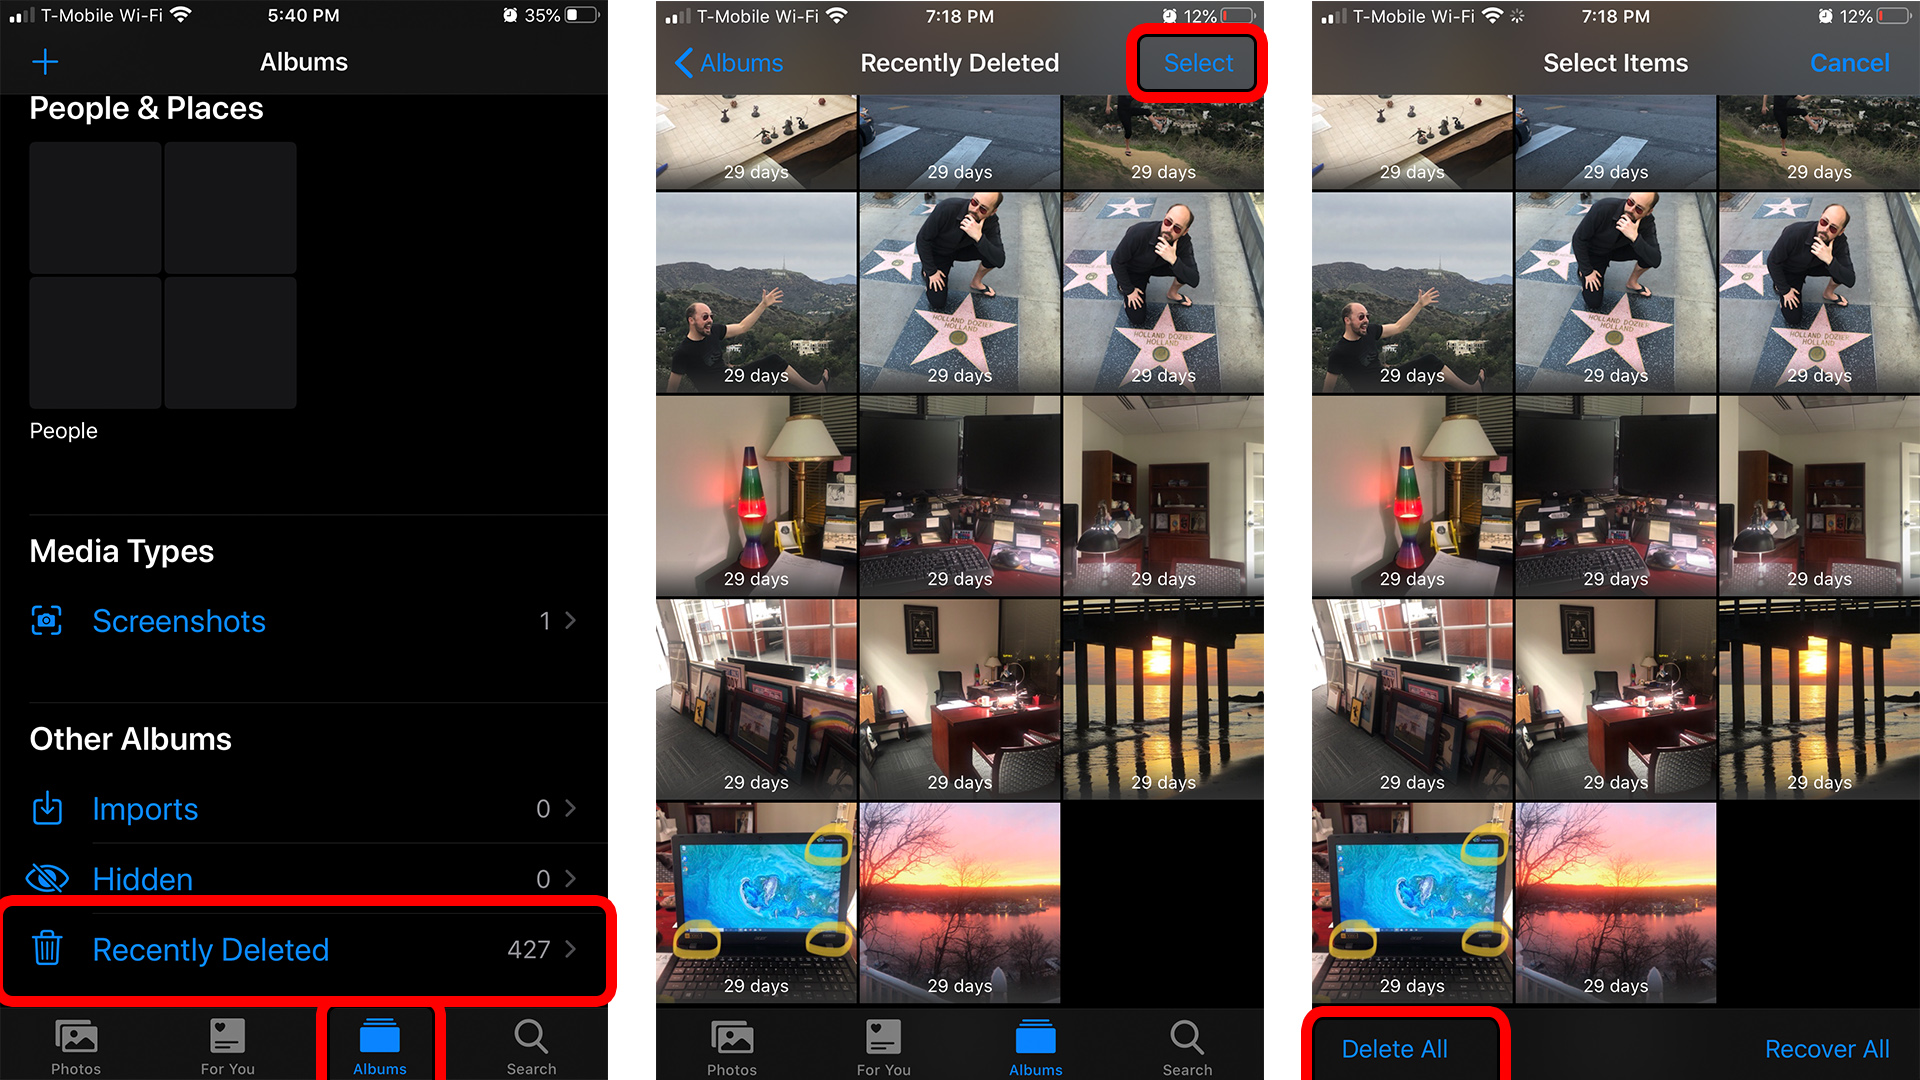 How to Delete All the Photos from Your iPhone